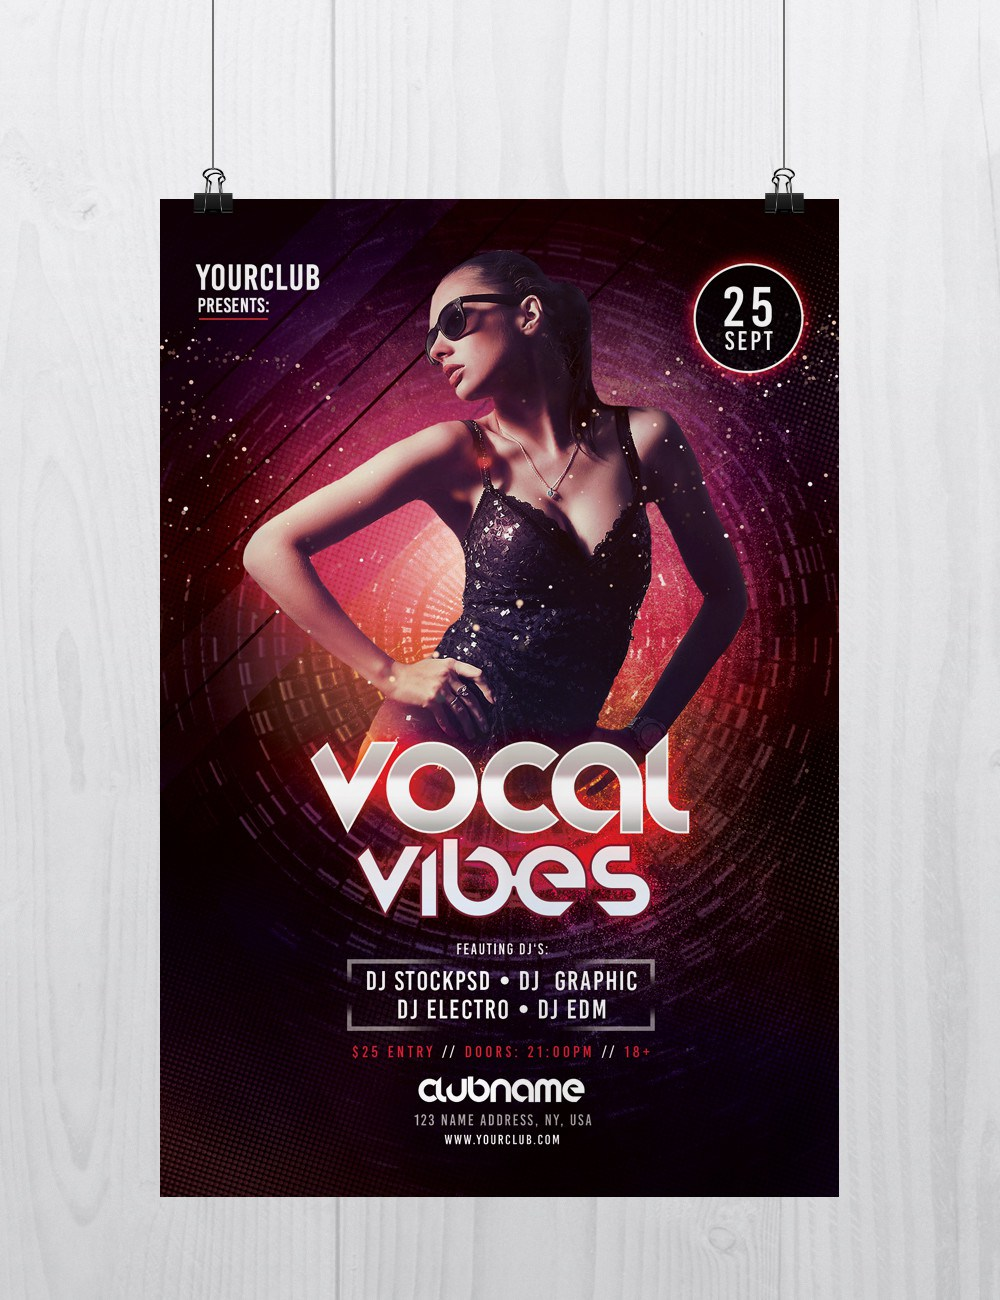 Vocal Vibes Free Psd Flyer Template Freebiedesign